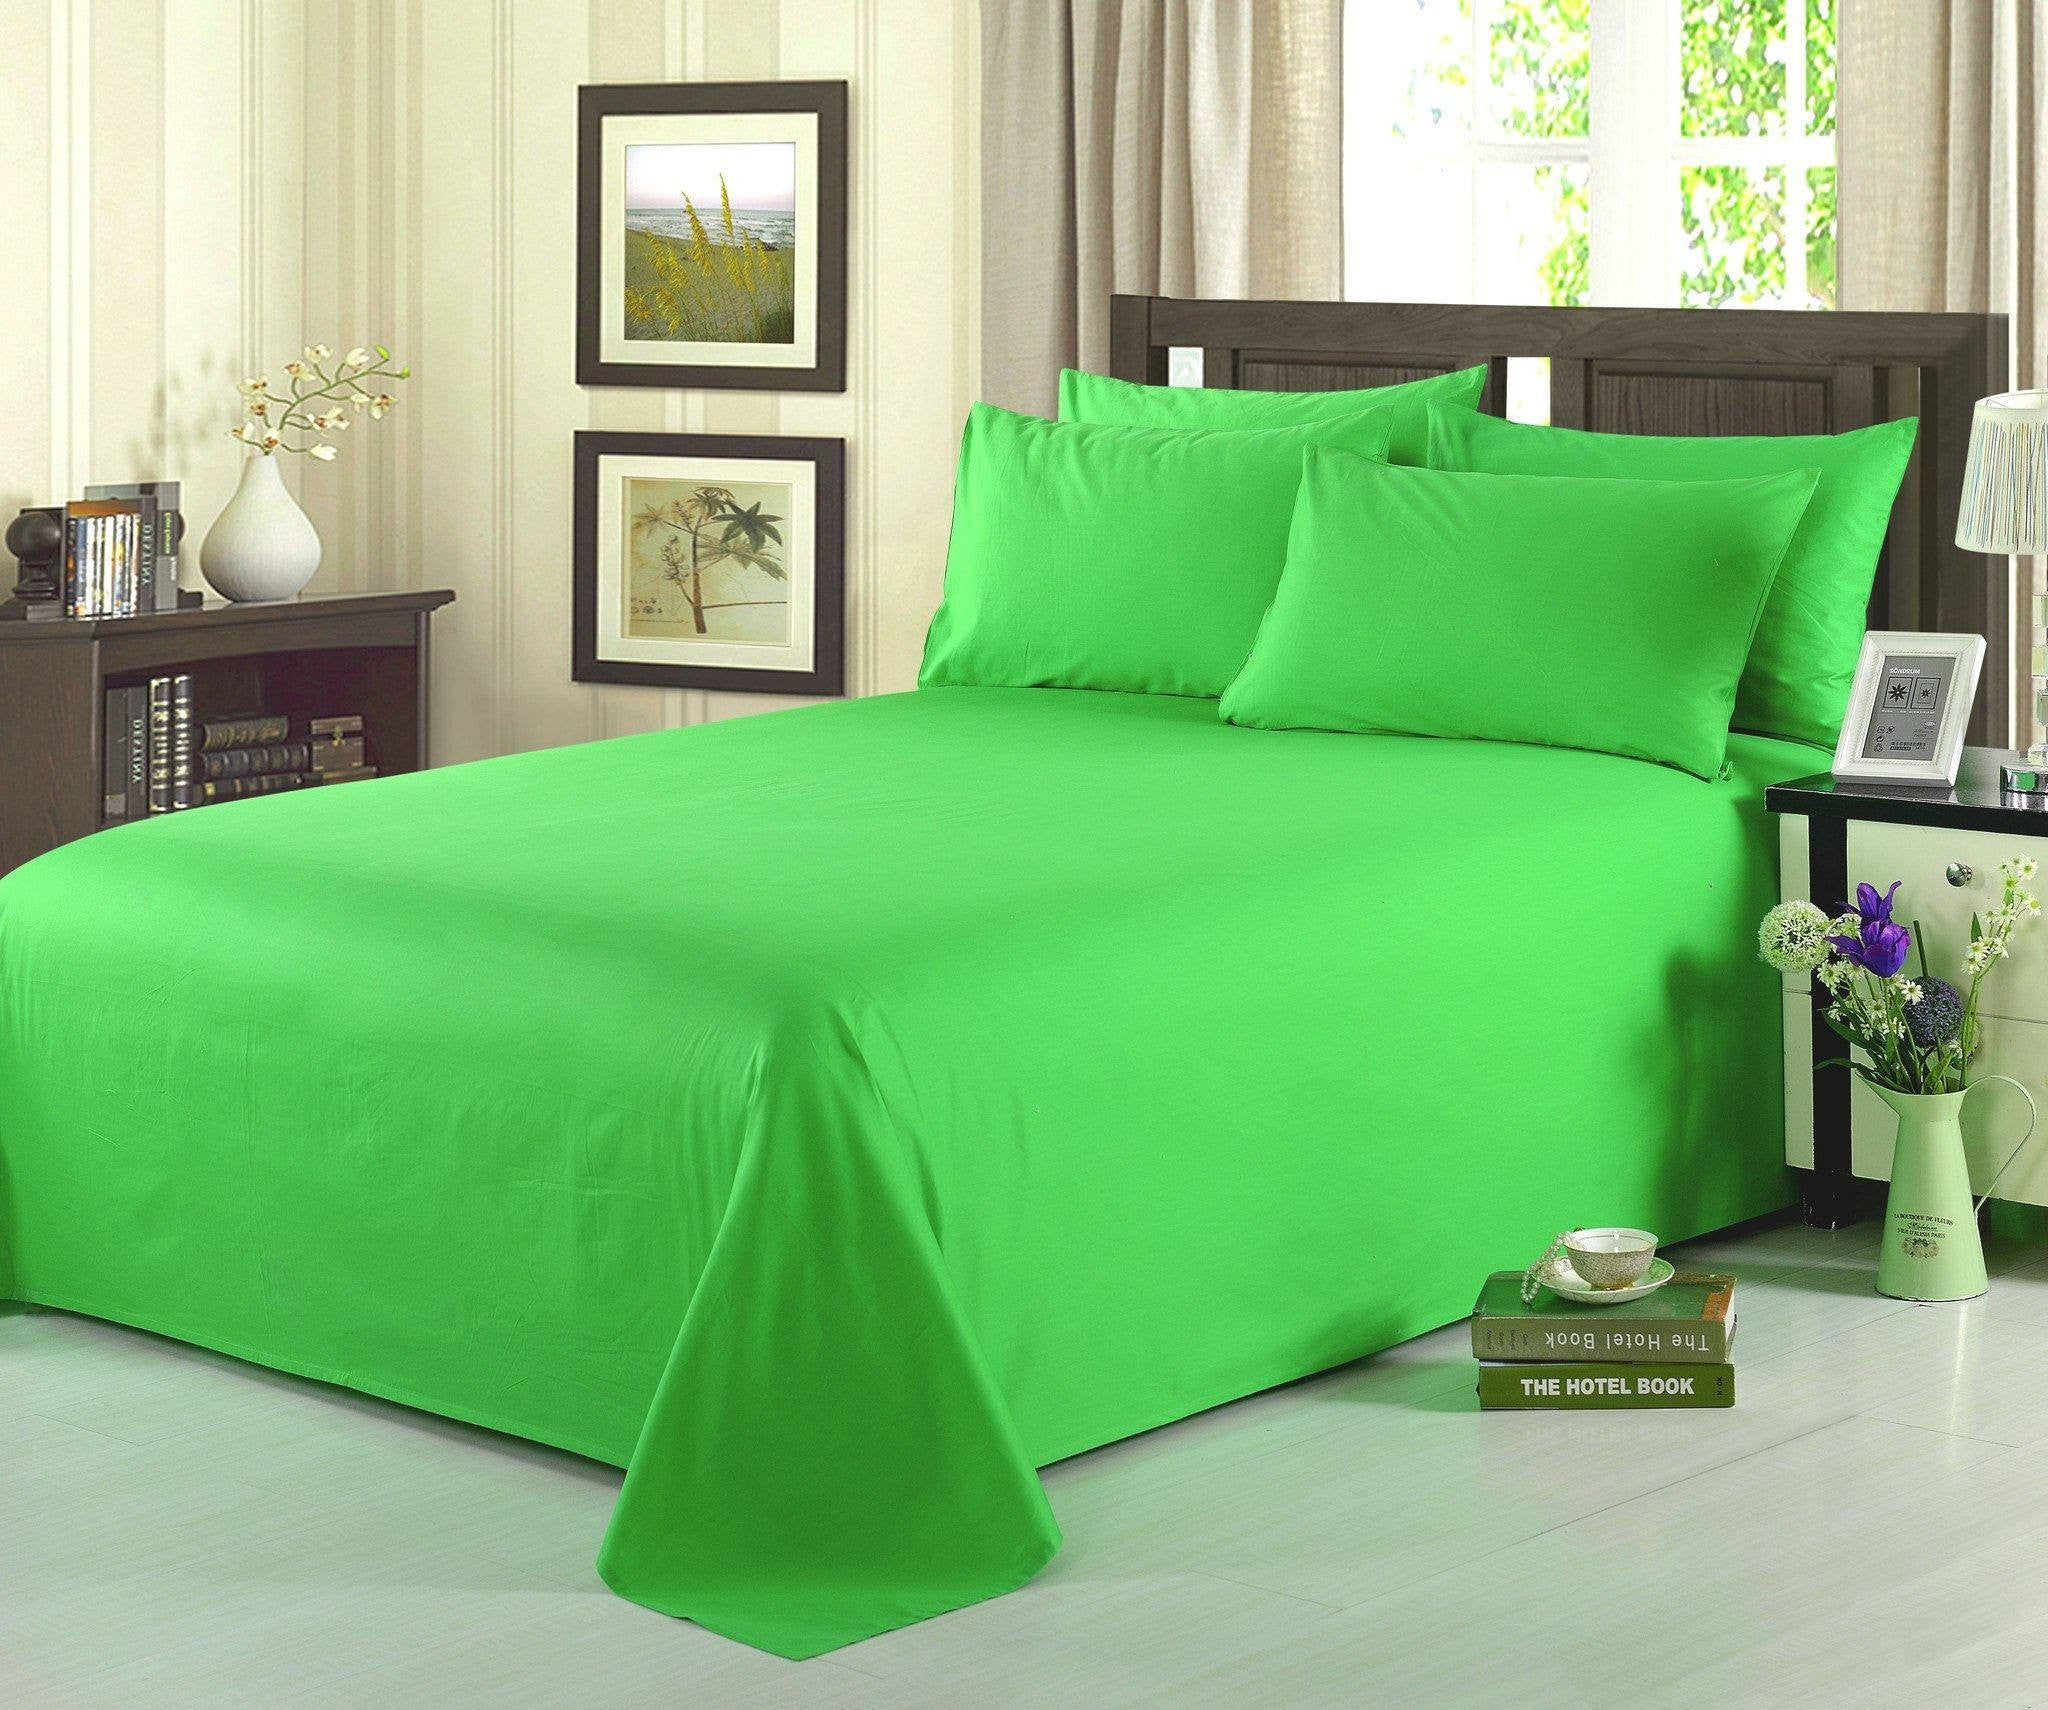 Amazing Lime Green Cotton Sheets